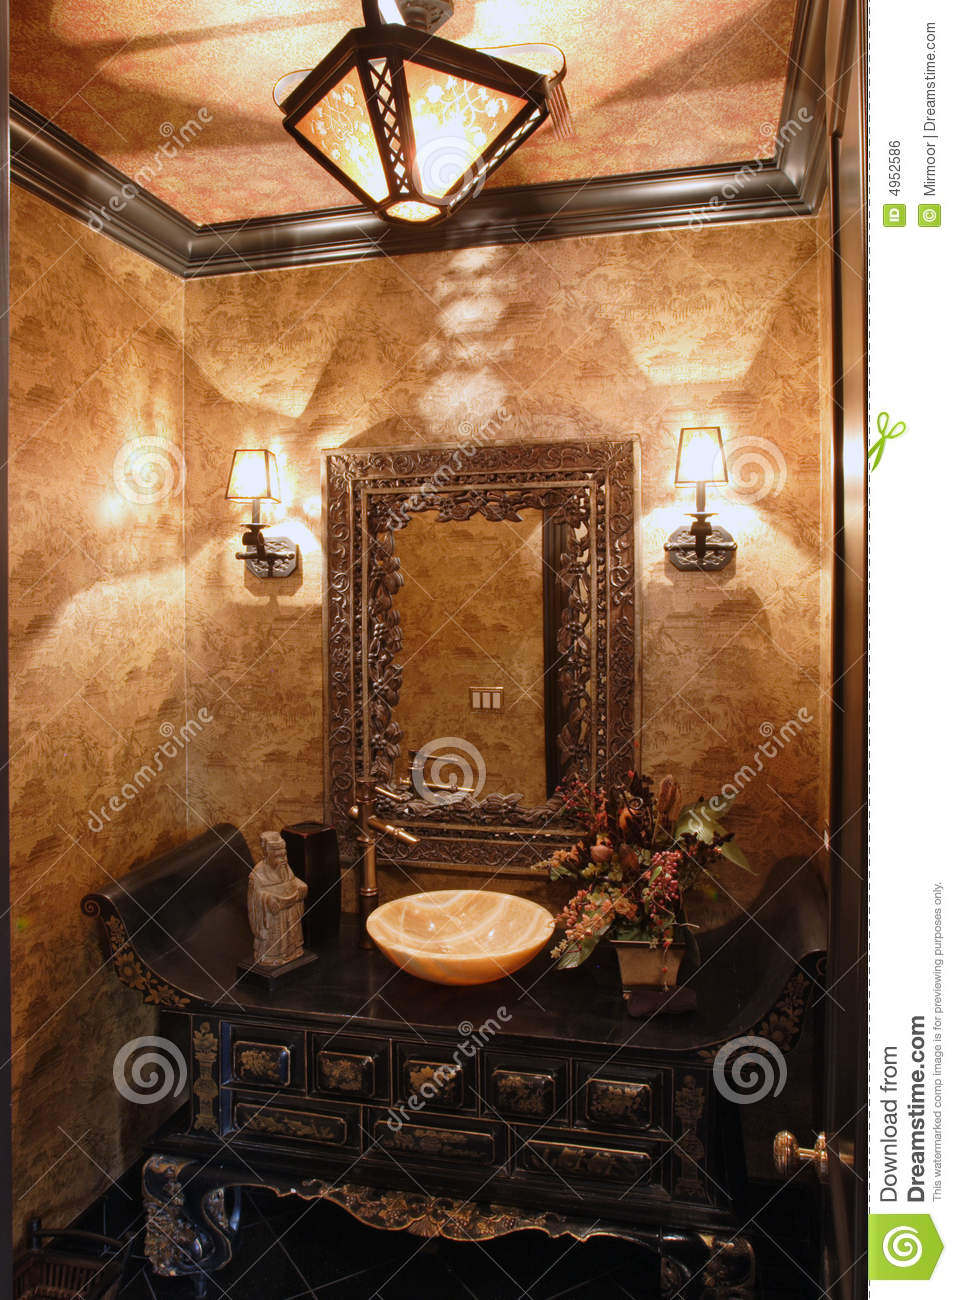 exclusive bathroom royalty free stock image - image: 4952586